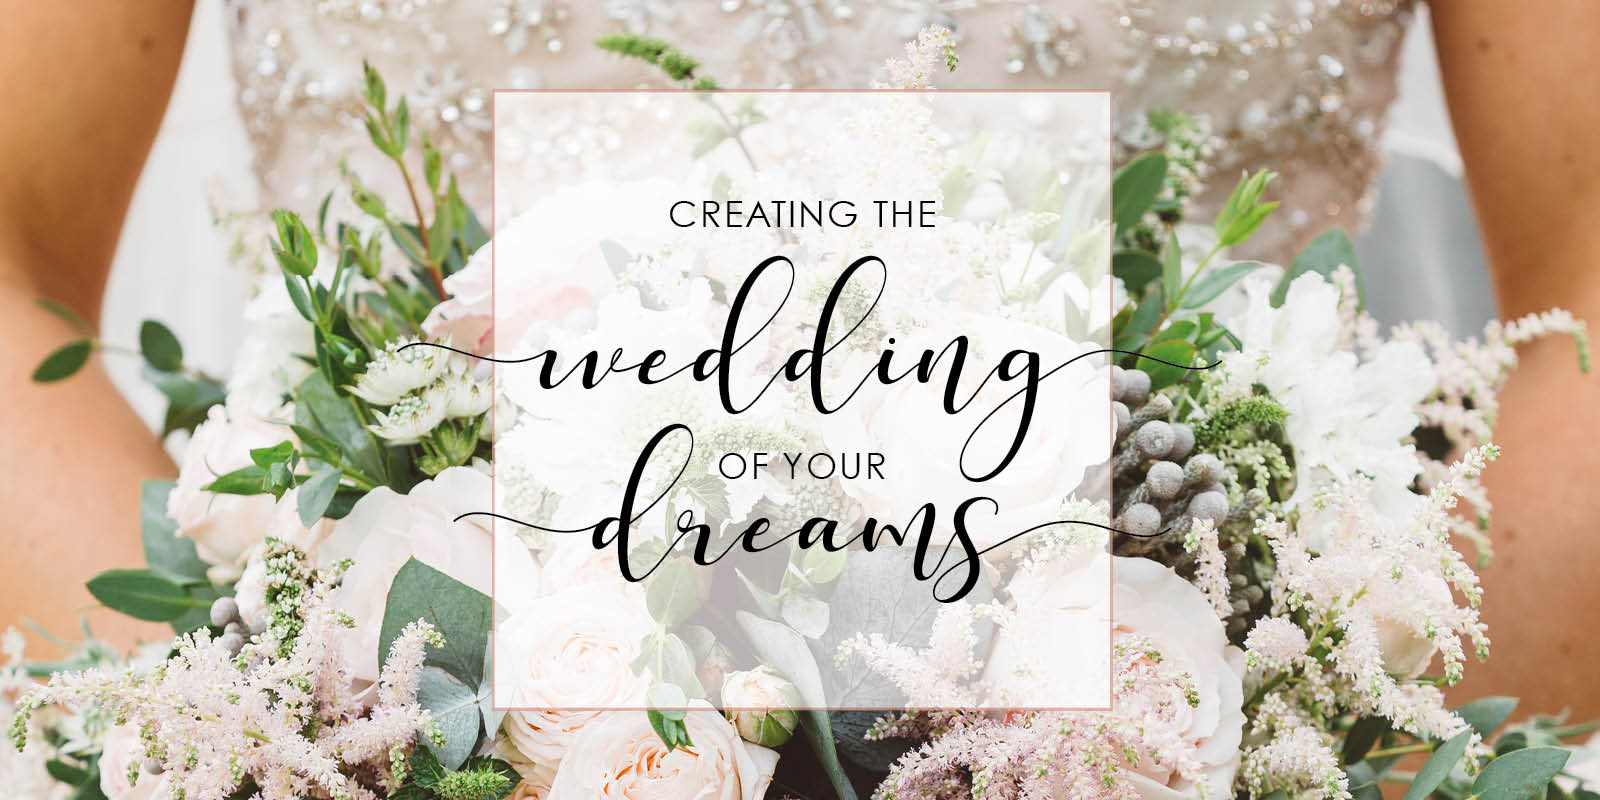 Creating the wedding of your dreams at Chic Weddings In Kent